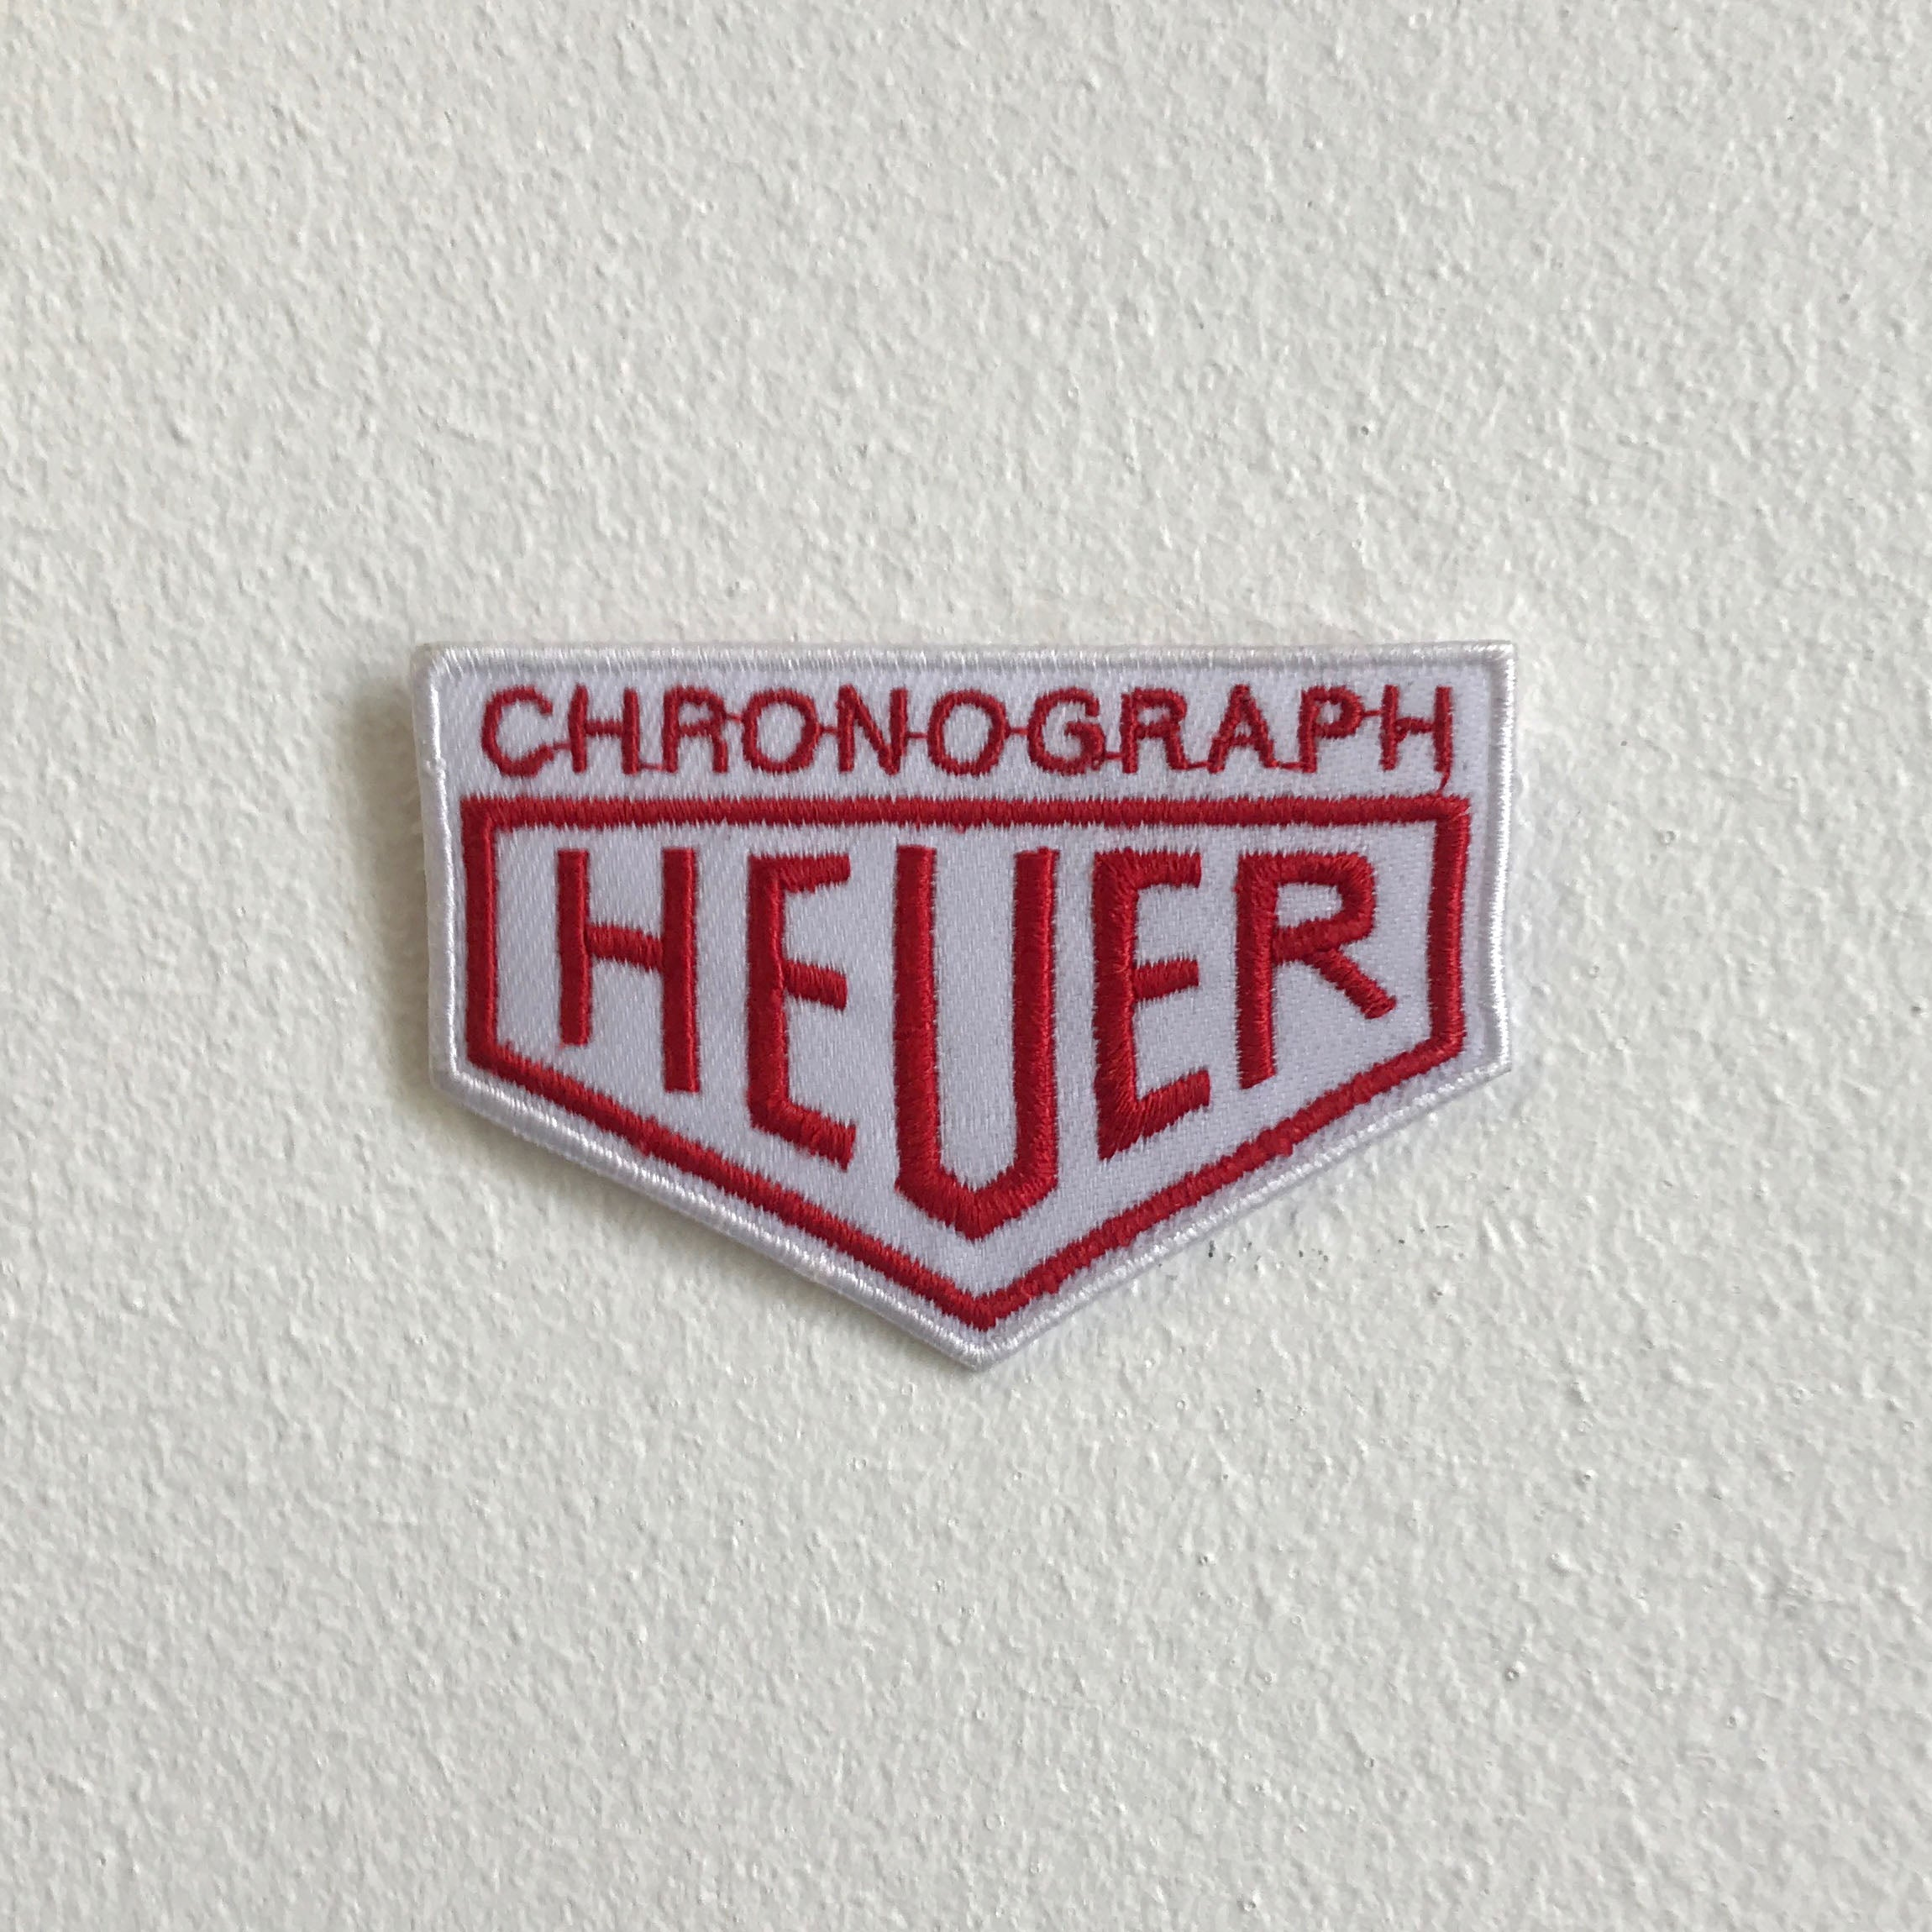 Chronograph Heuer watches badge Iron Sew On Embroidered Patch - Patches-Badges